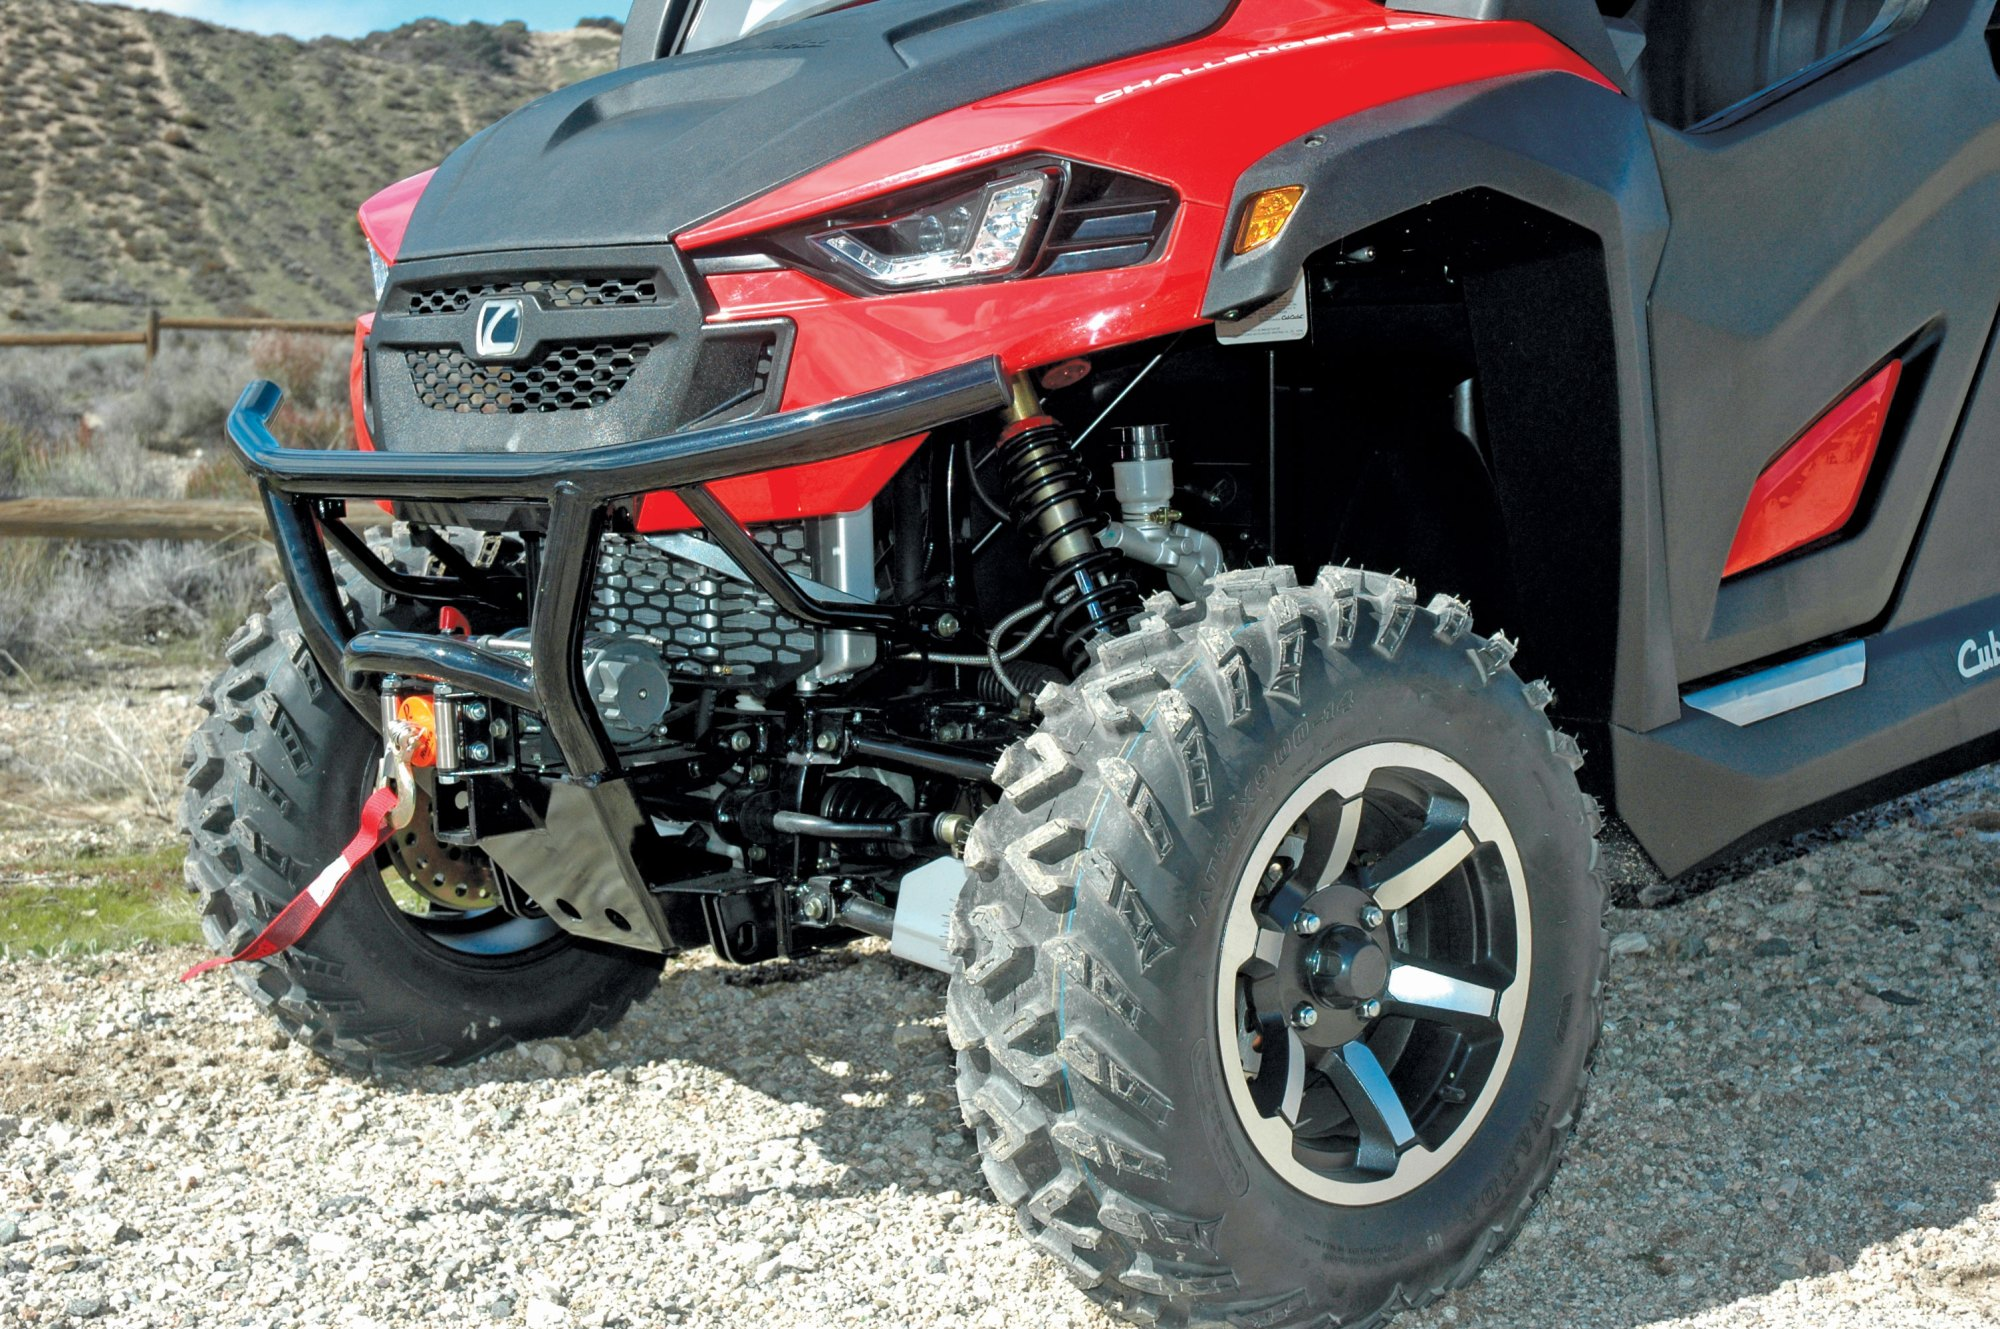 hight resolution of the cub cadet comes with a winch aluminum wheels and other extras like doors and a full windshield at the price of some manufacturers plain base models